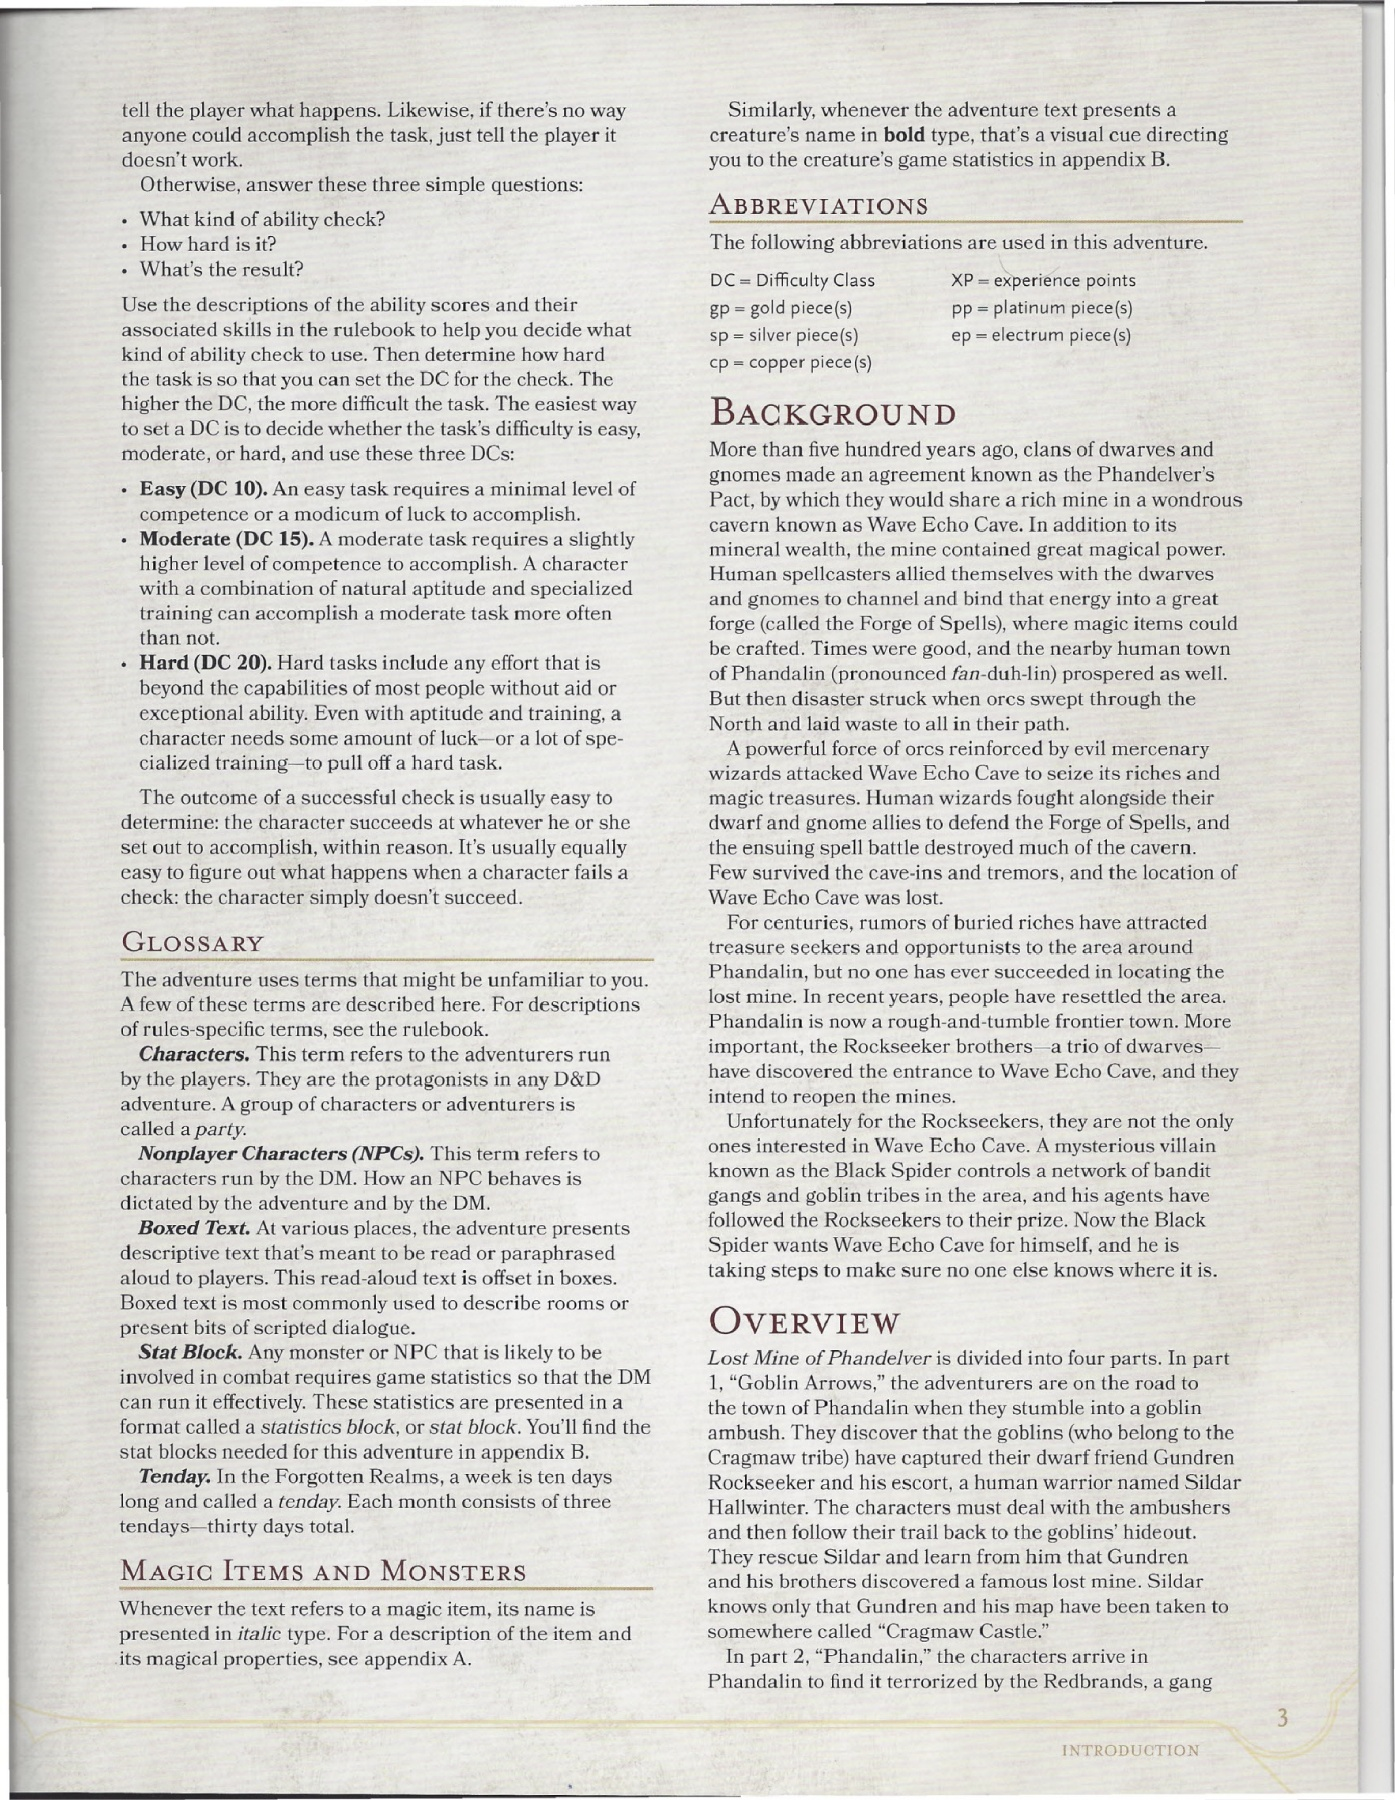 Lost Mine of Phandelver DM Guide Pages 1 - 50 - Text Version | AnyFlip